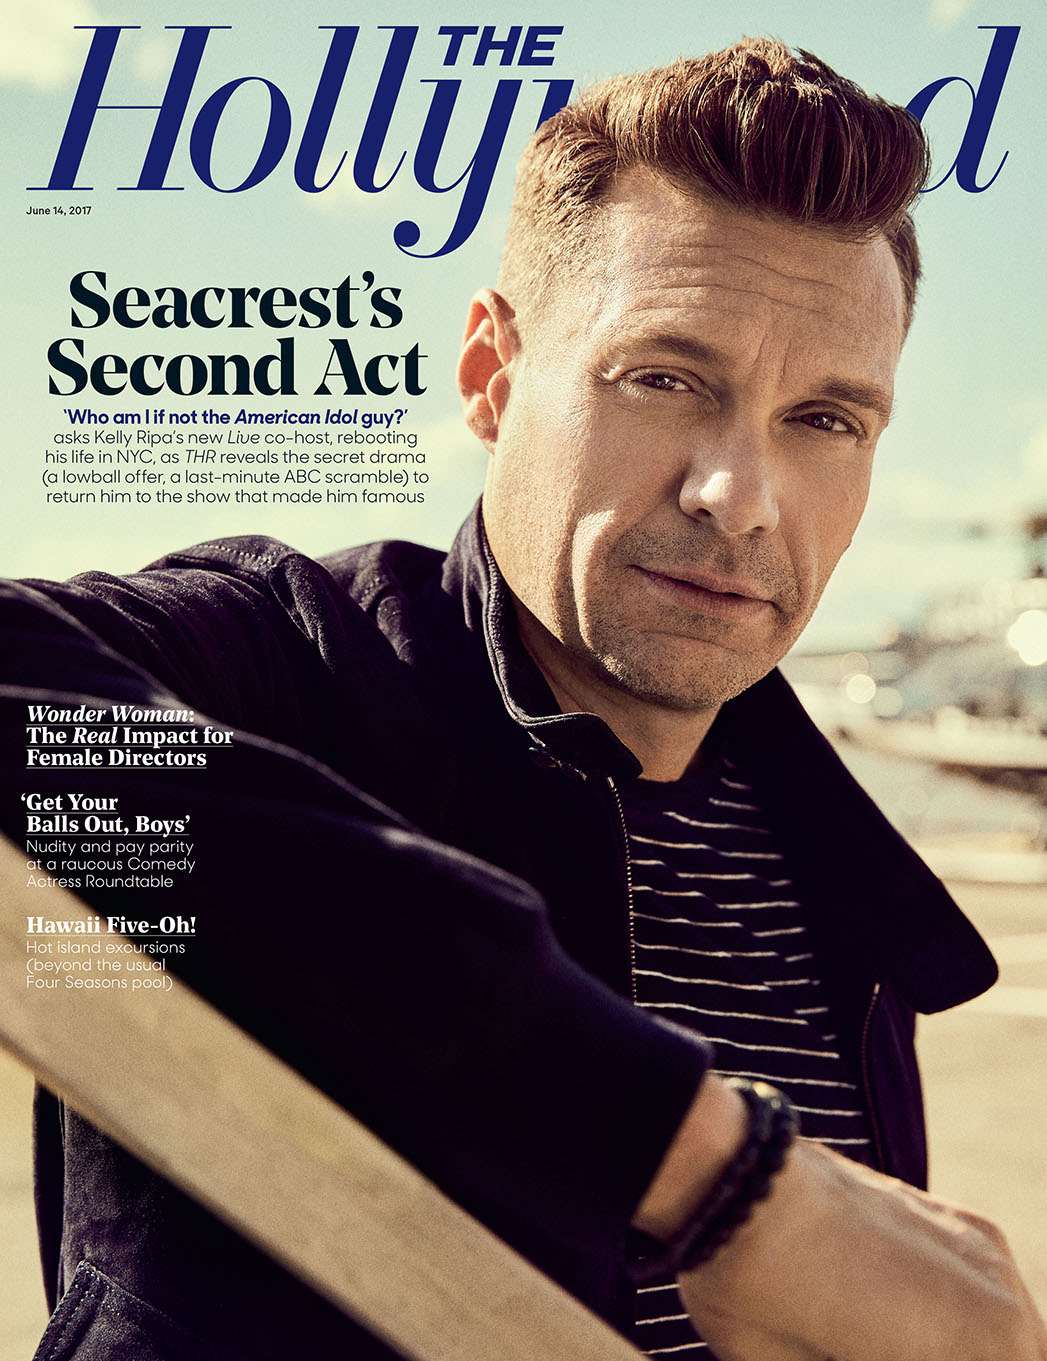 Ryan Seacrest on the cover of The Hollywood